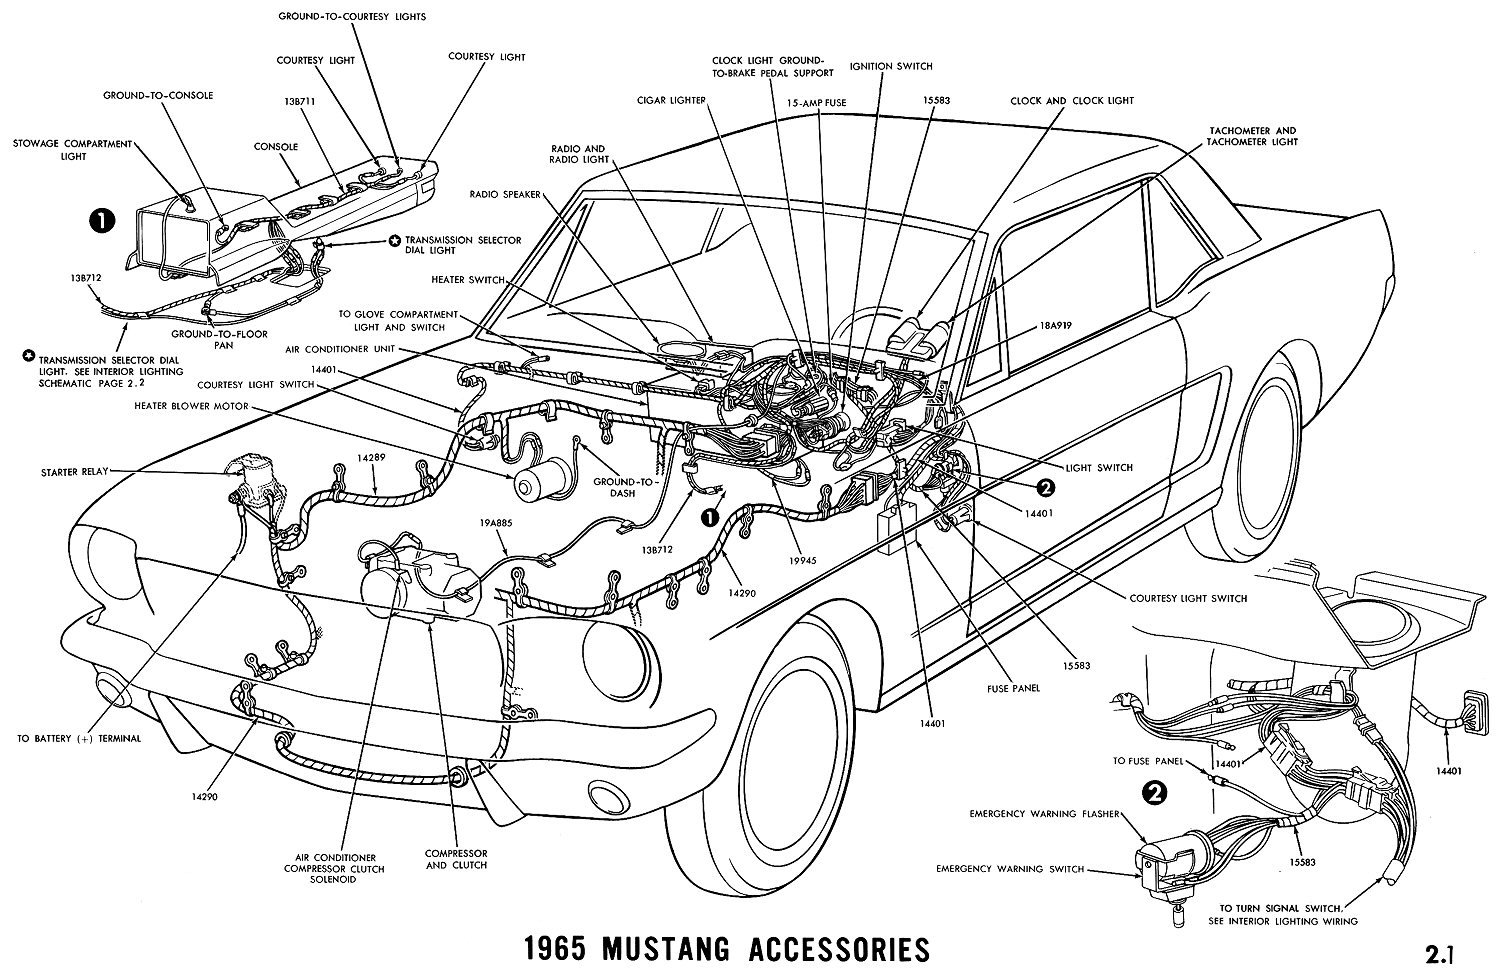 489994d1452484302 65 gt ammeter pegged mystery white black wire 1965 accessories pictorial 65 gt ammeter pegged, and mystery white black wire ford mustang 1967 Mustang Wiring Schematic at crackthecode.co